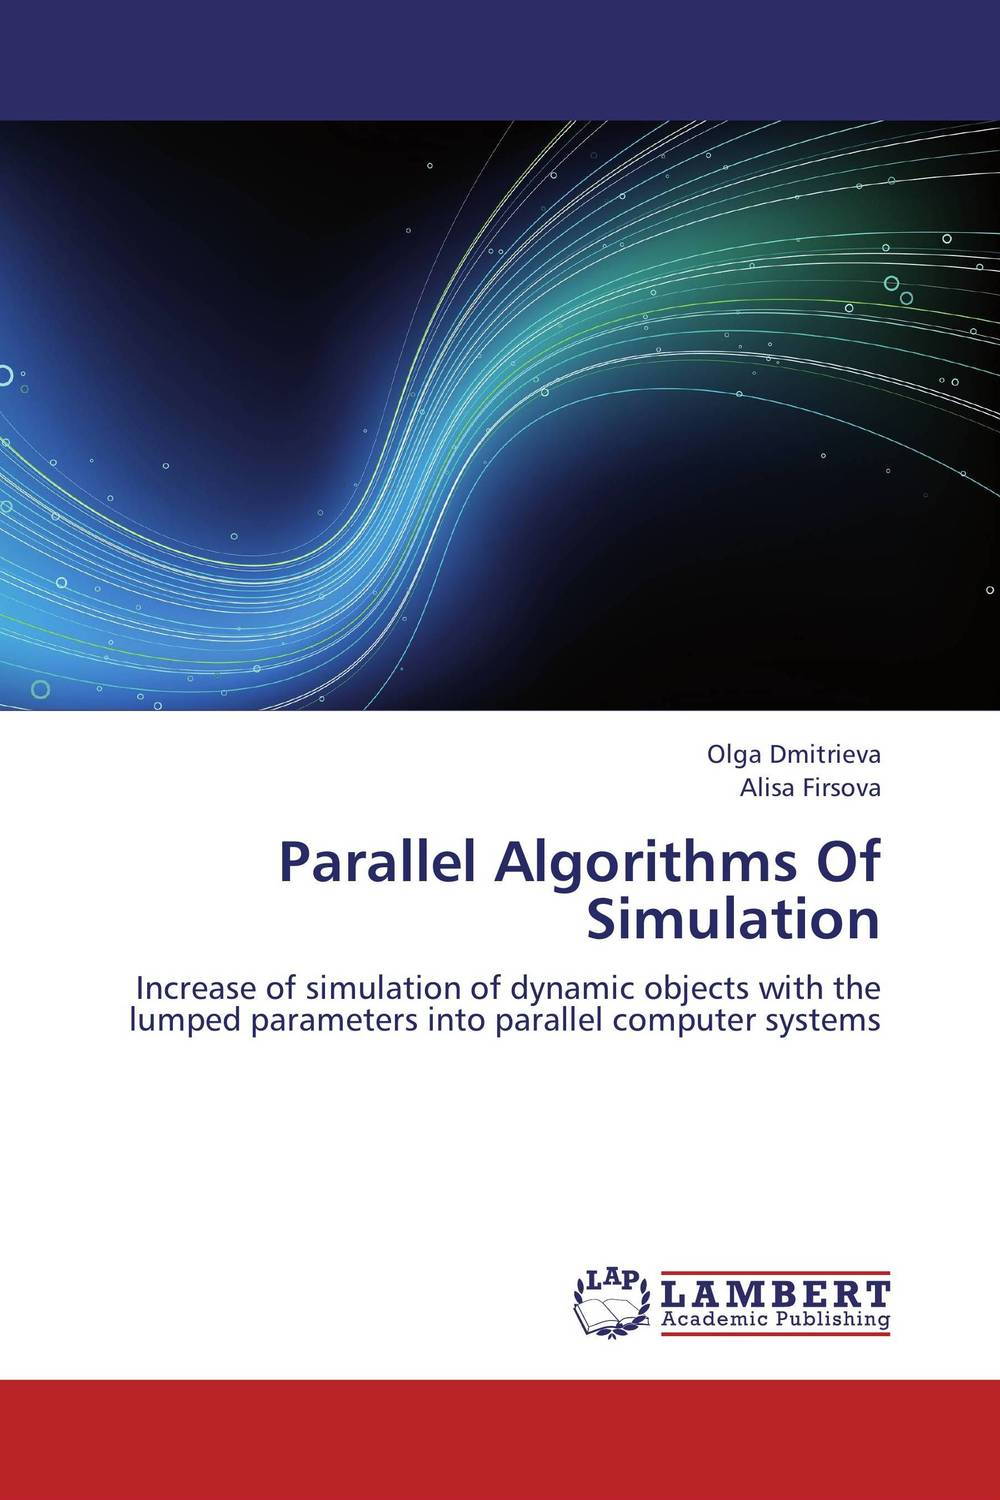 Parallel Algorithms Of Simulation collocation methods for volterra integral and related functional differential equations